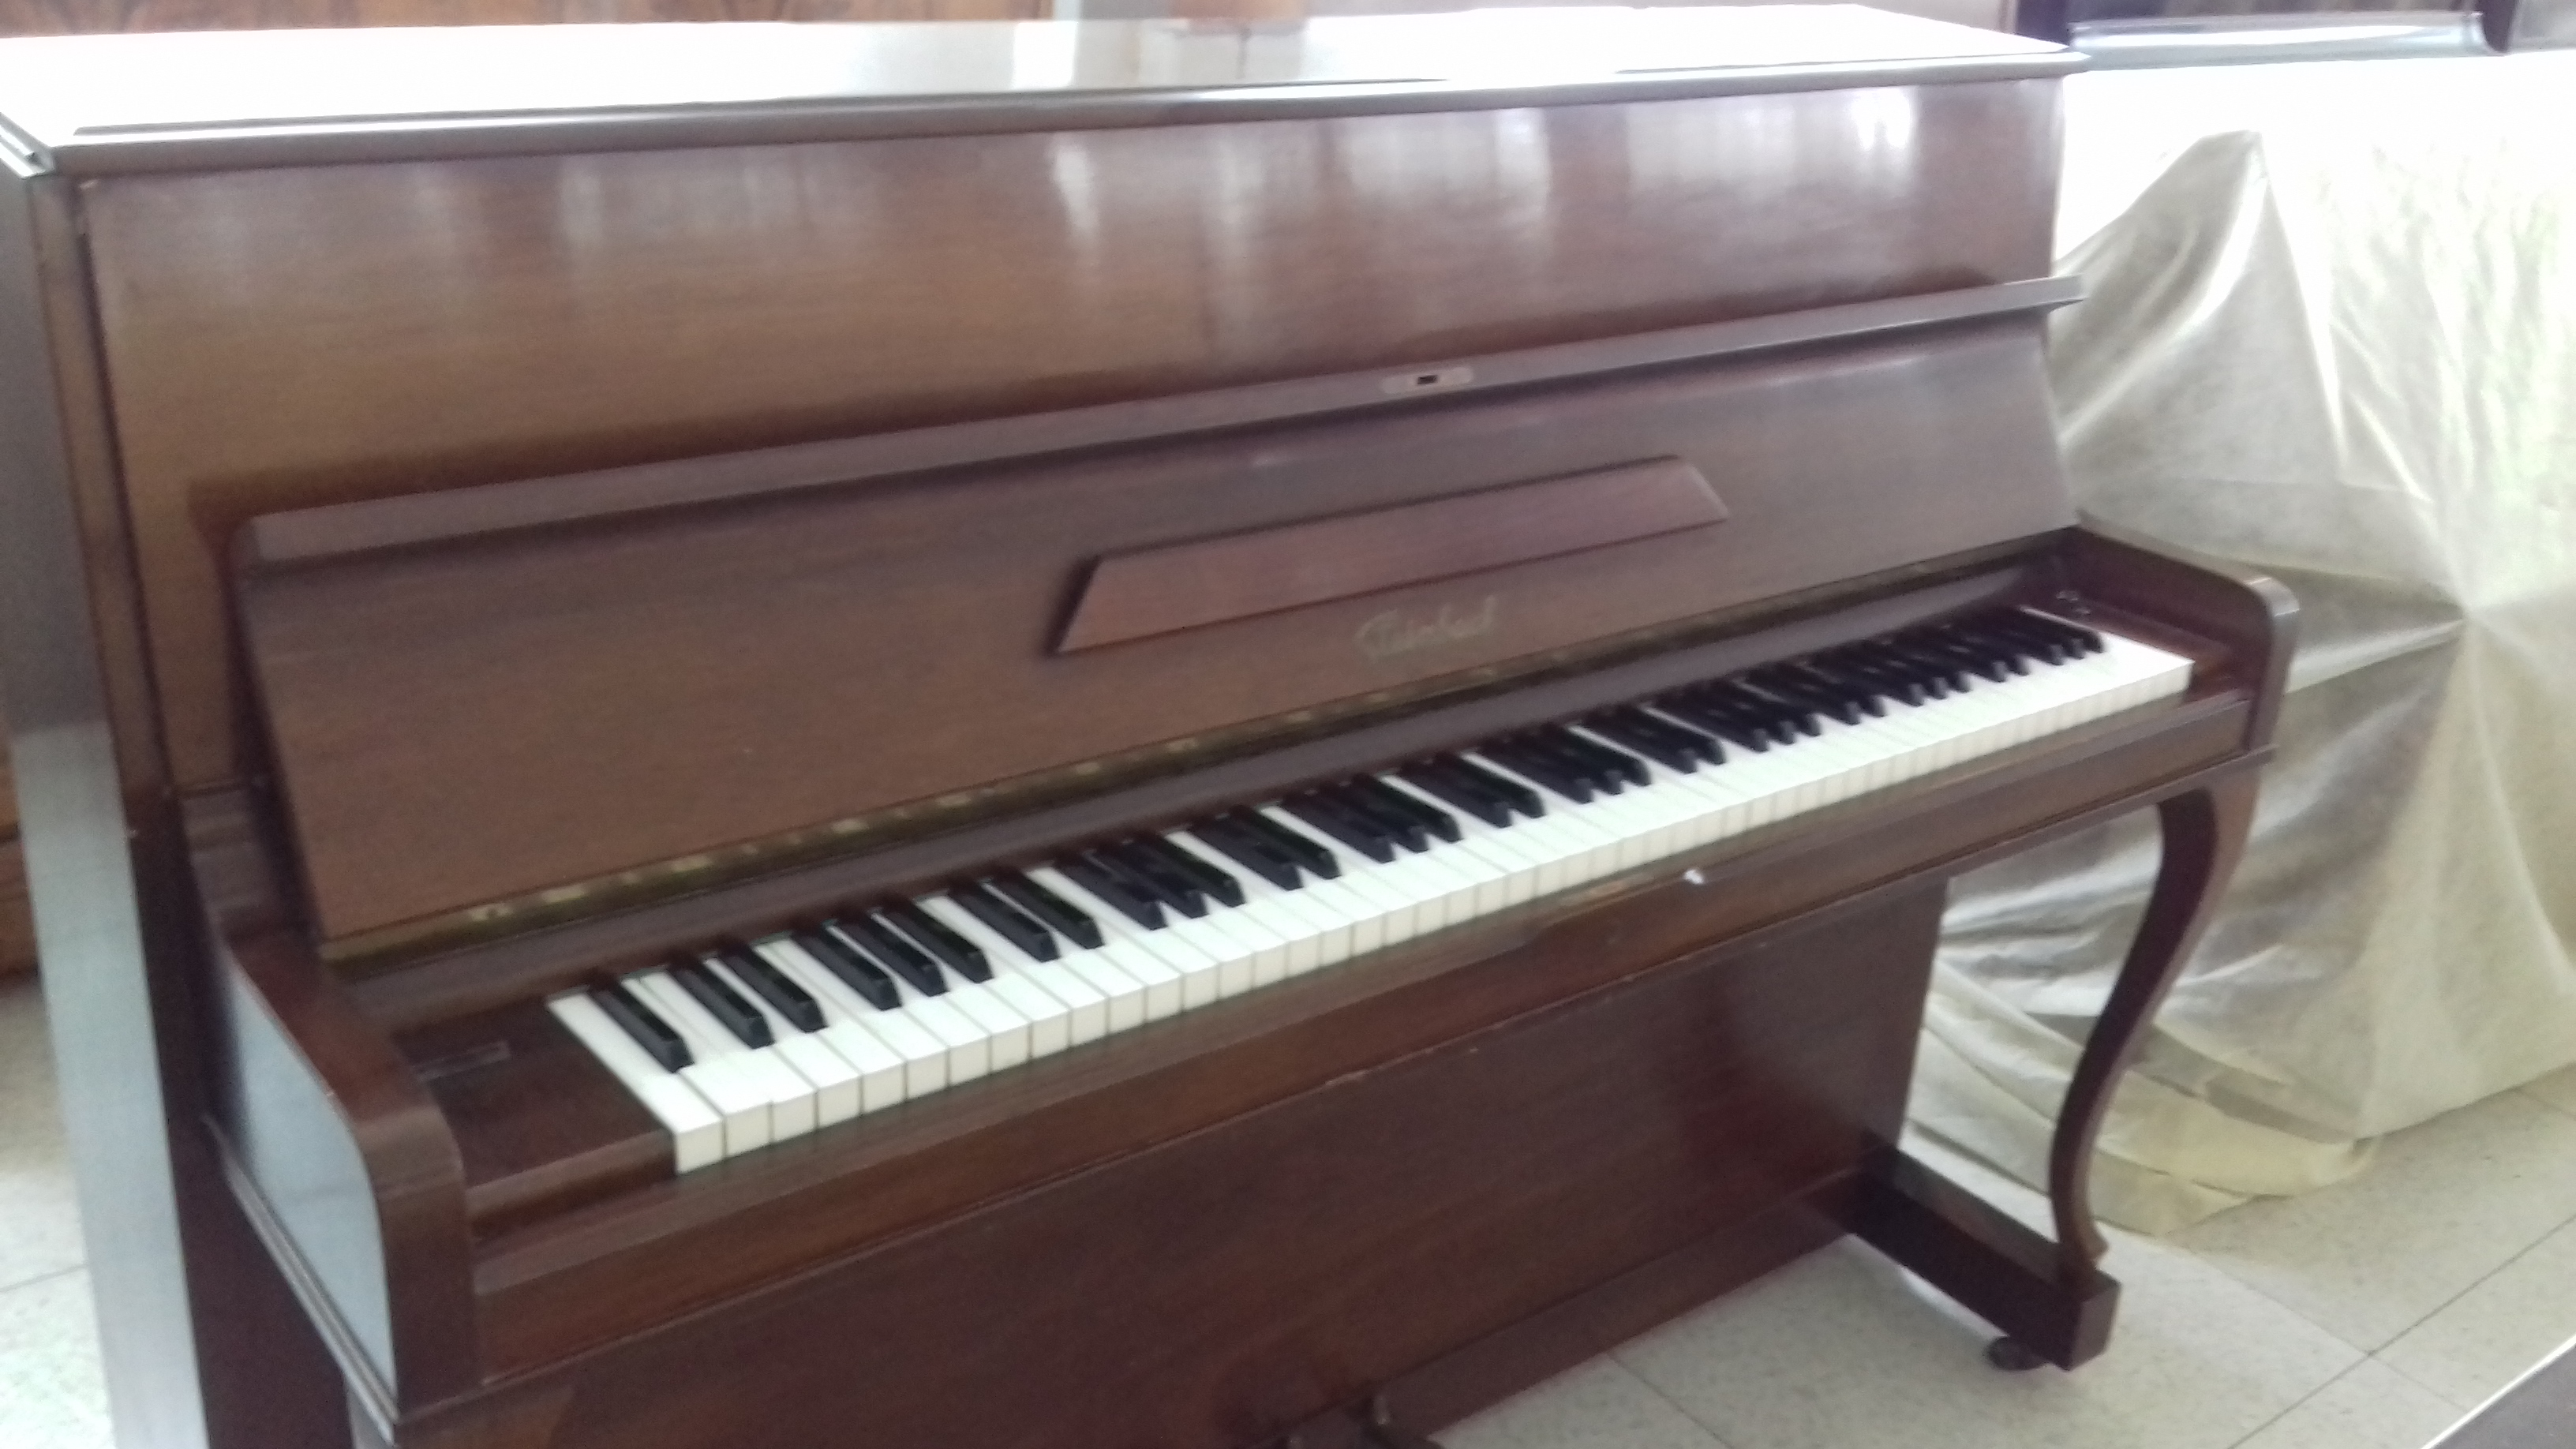 Pianoforti : Pianoforte verticale Steinbach